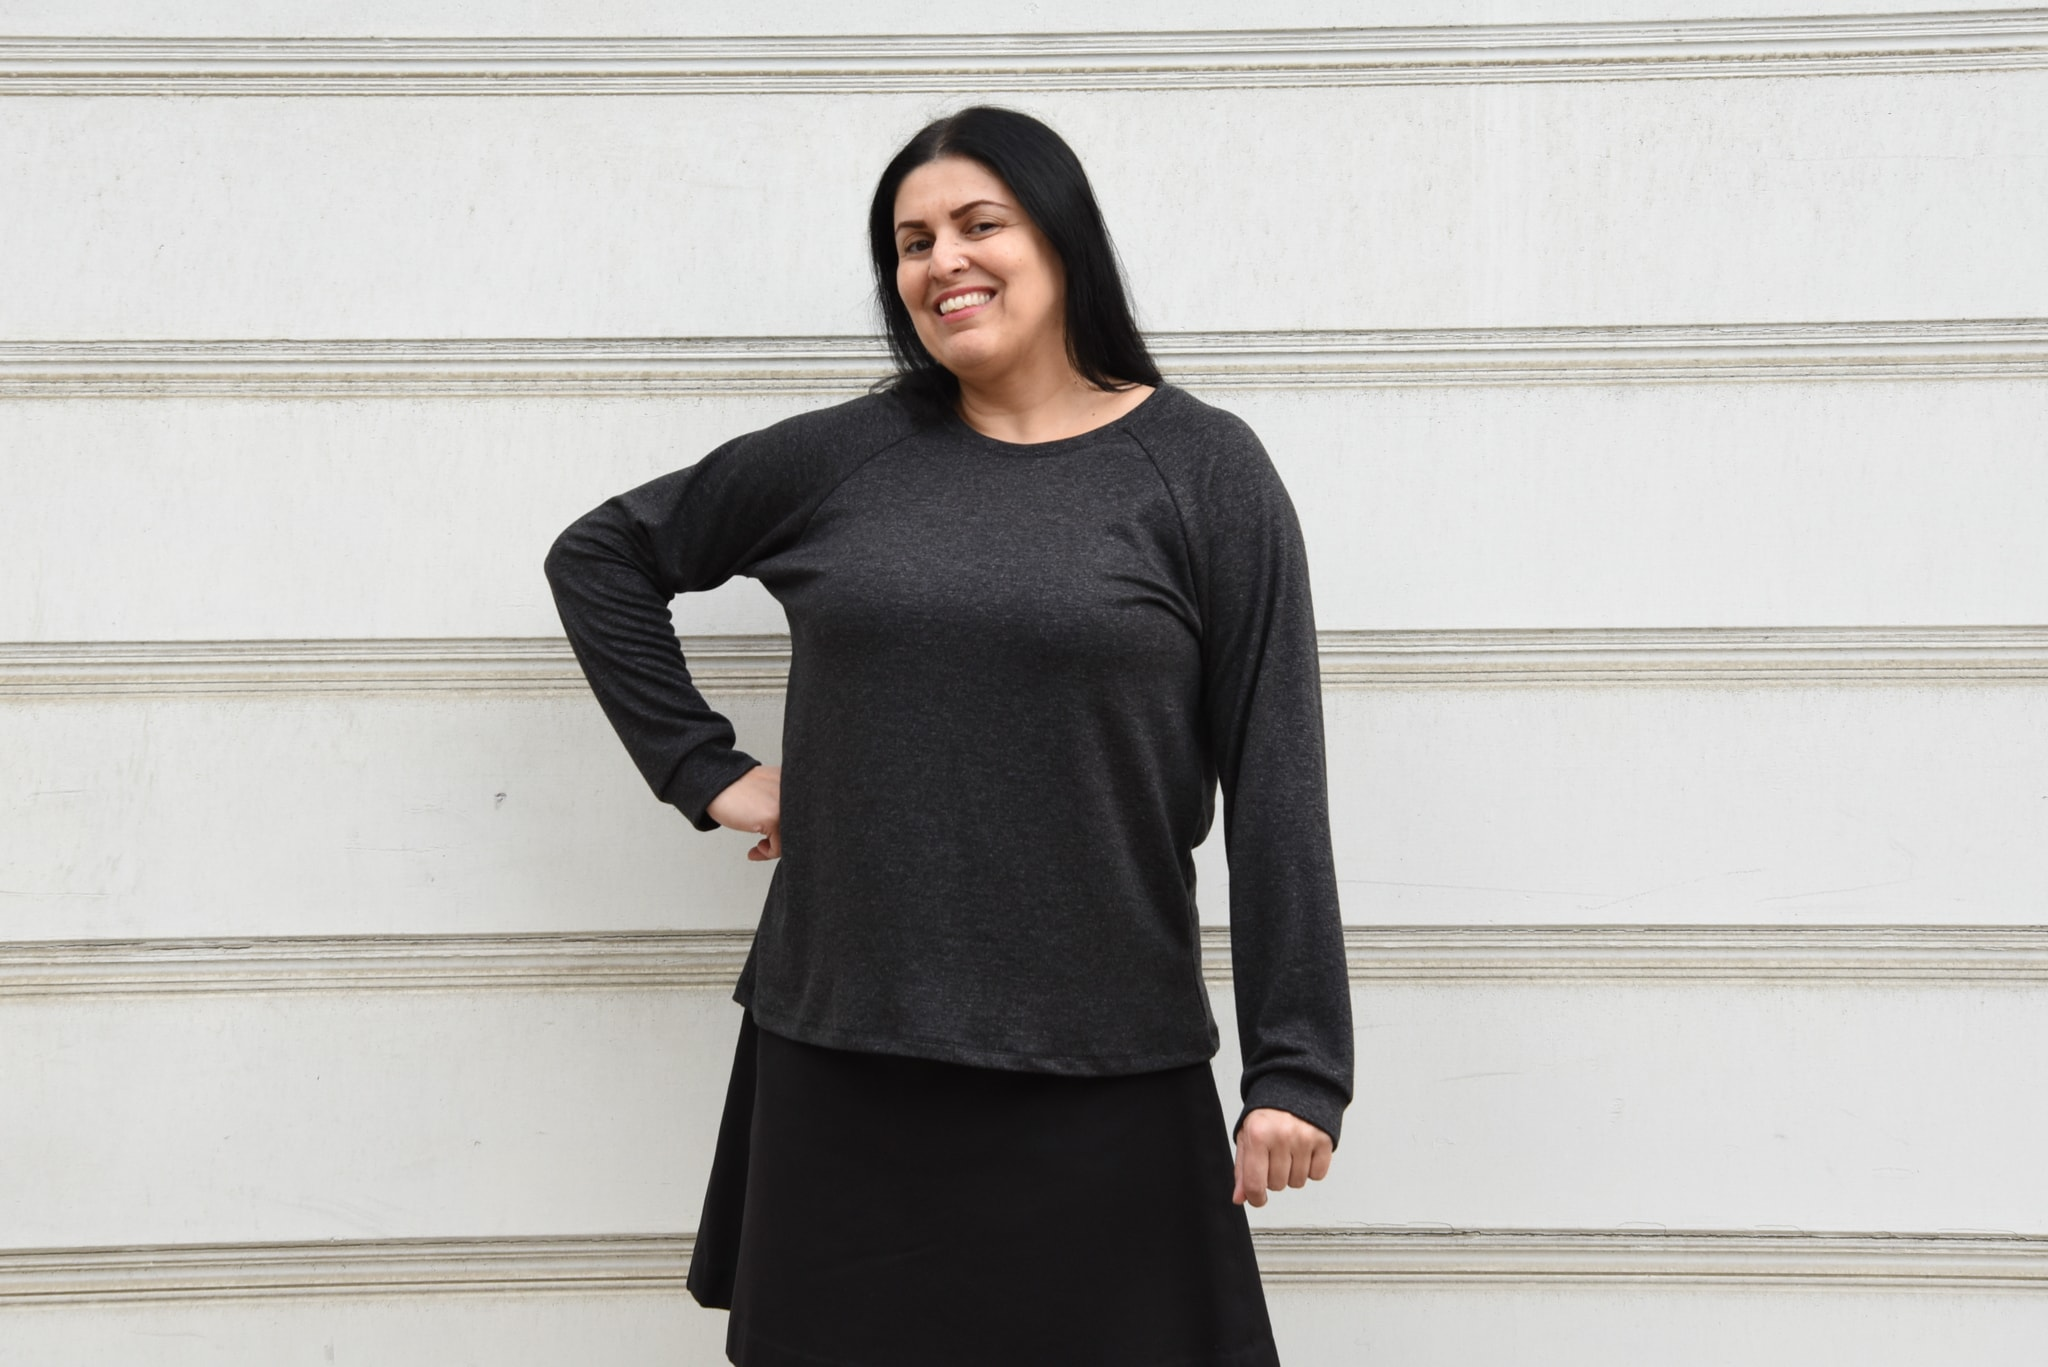 Image of a woman smiling at the camera wearing a dark gray Grainline Linden sweatshirt and a black skirt standing in front of a white background